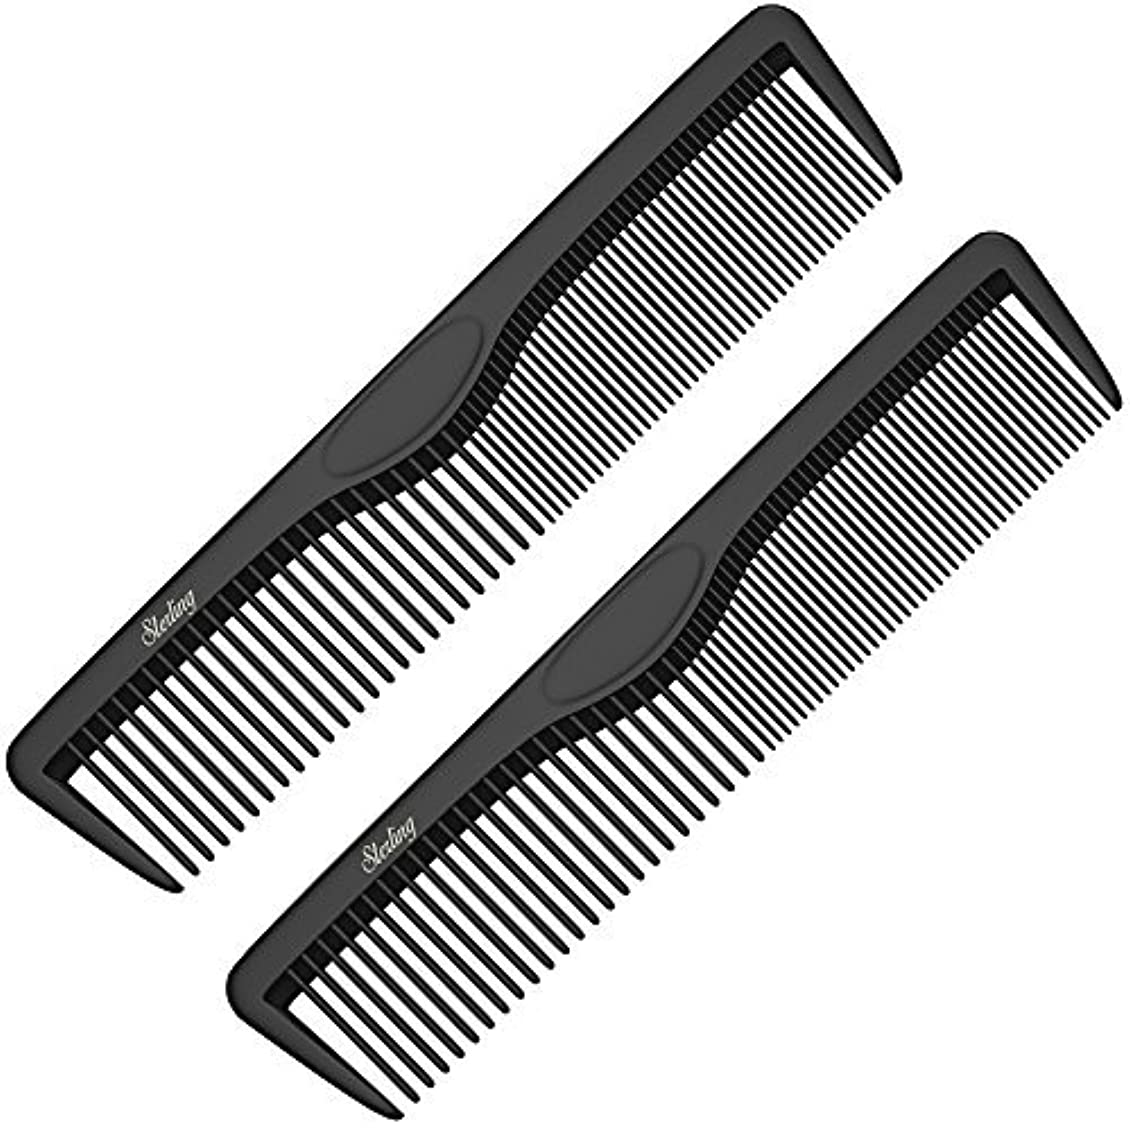 Pocket Combs | 2 Pack | Professional 5 Inch Black Carbon Fiber Hair Comb | Fine And Wide Tooth Travel Comb Set...